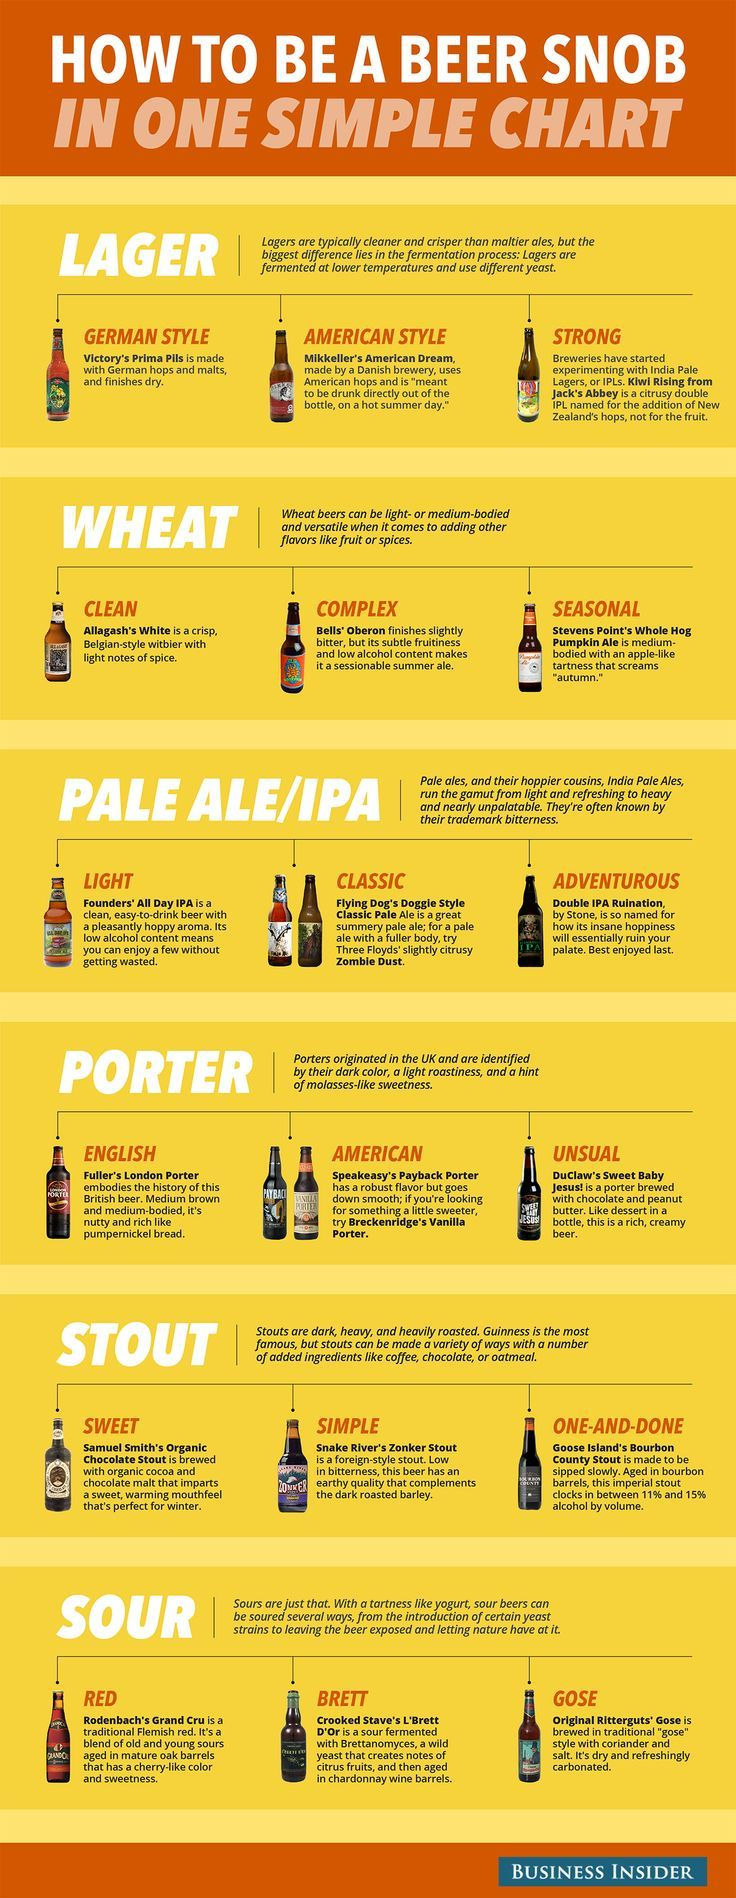 How to be a Beer Snob with One Chart #Infographic